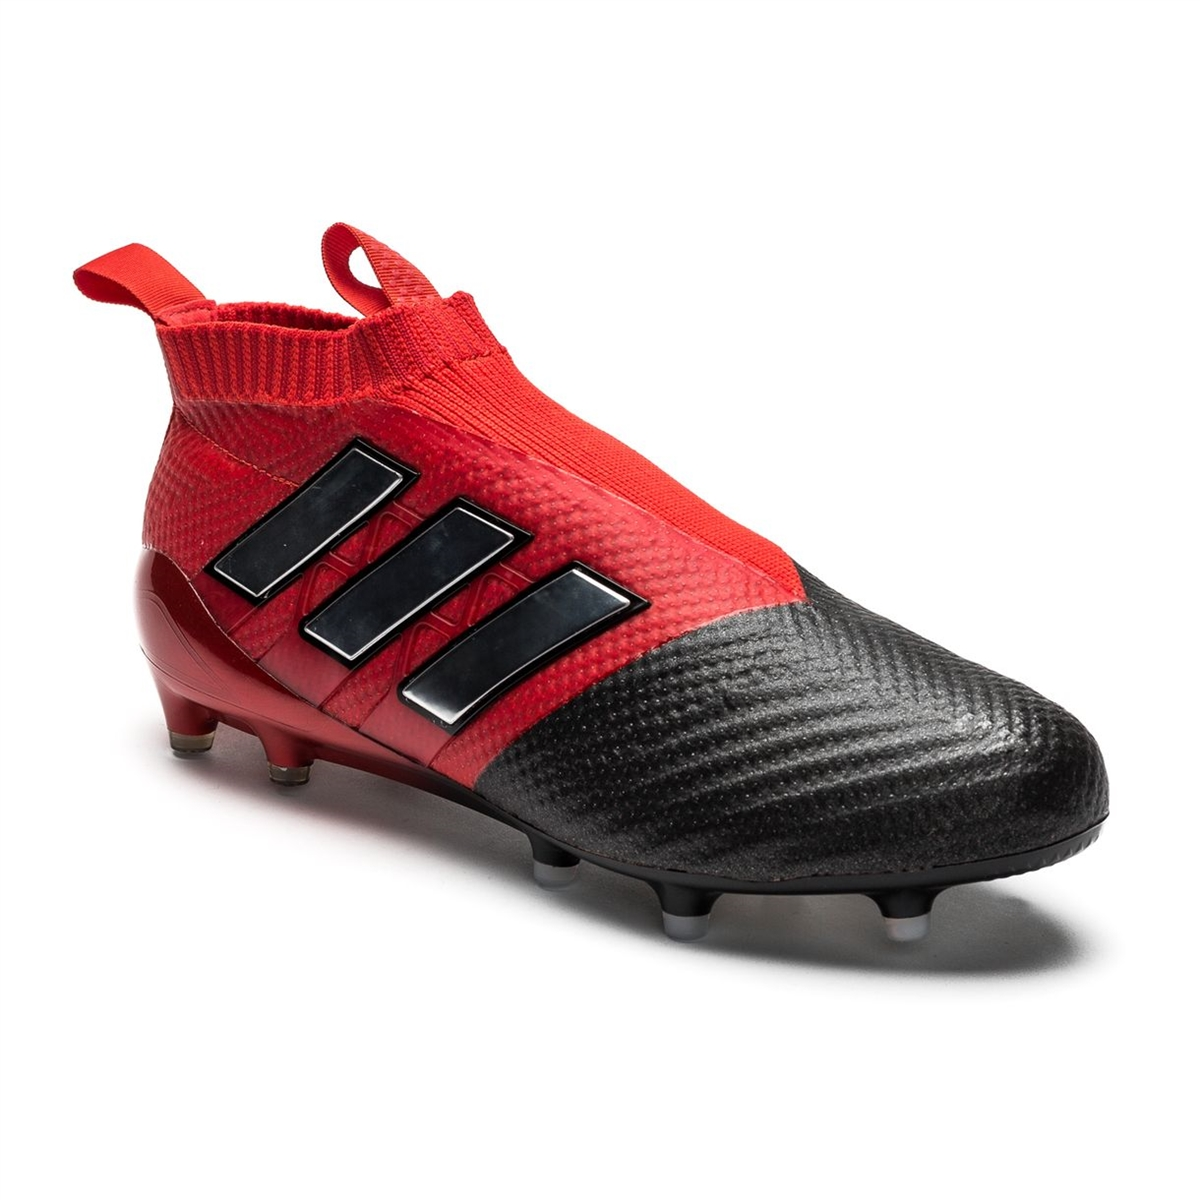 big sale fc1e8 55712 Adidas ACE 17+ PURECONTROL FG Soccer Cleats (Red/White/Black)